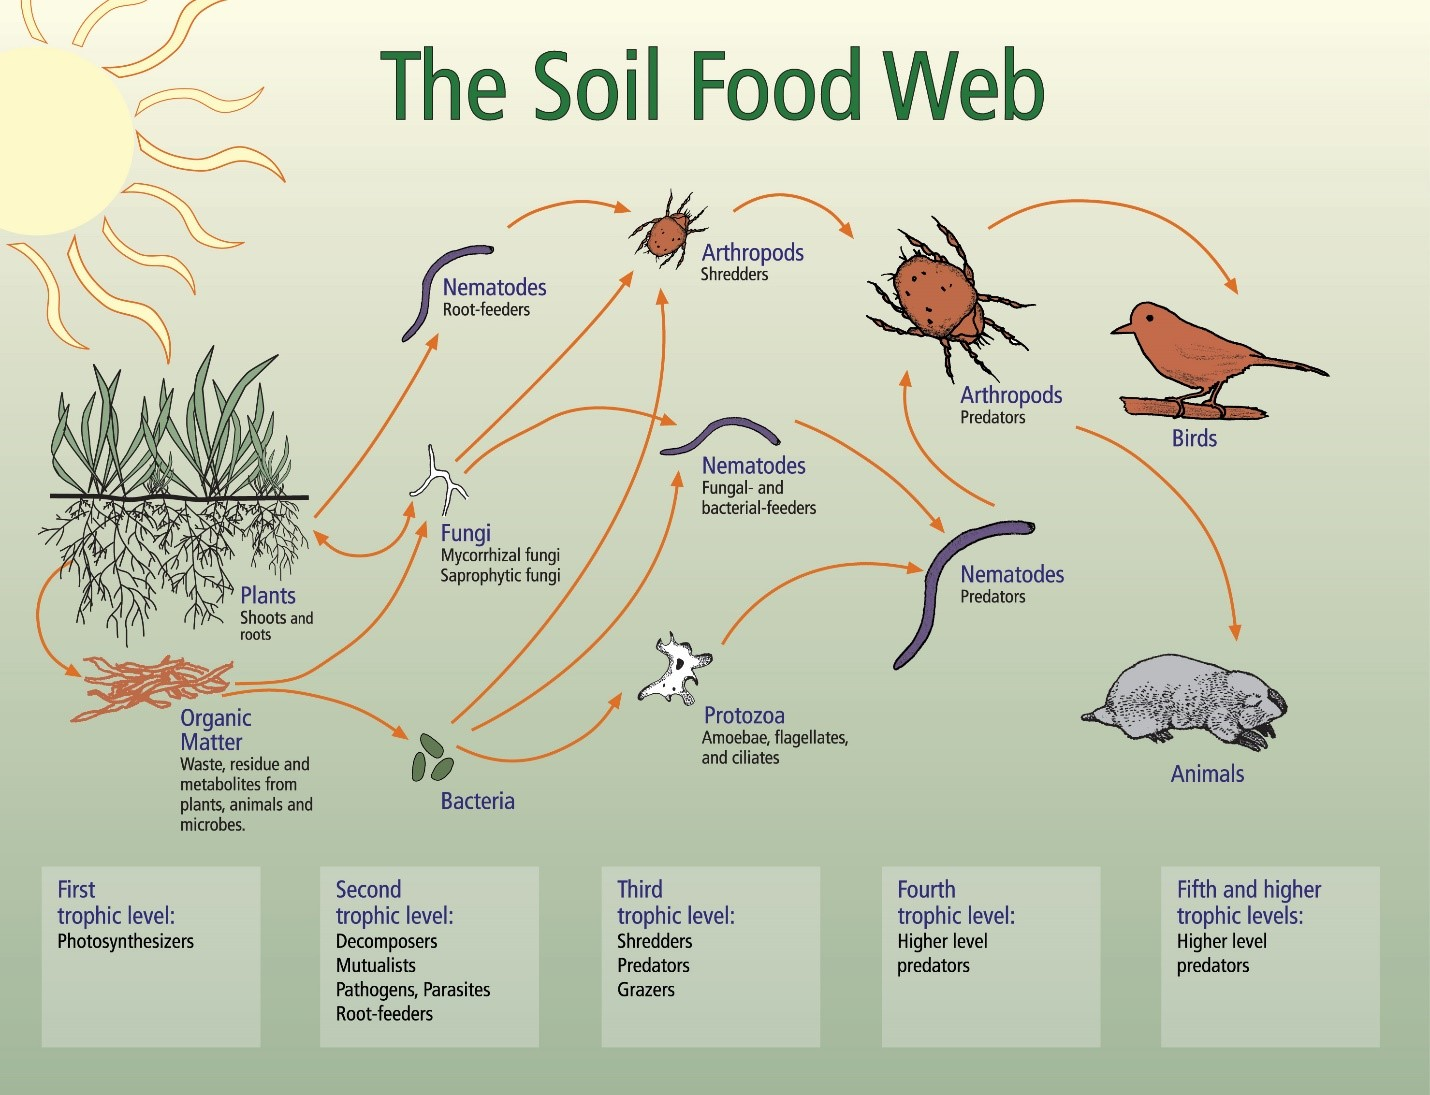 Trophic levels of the soil food web (Source: nrcs.usda.gov)